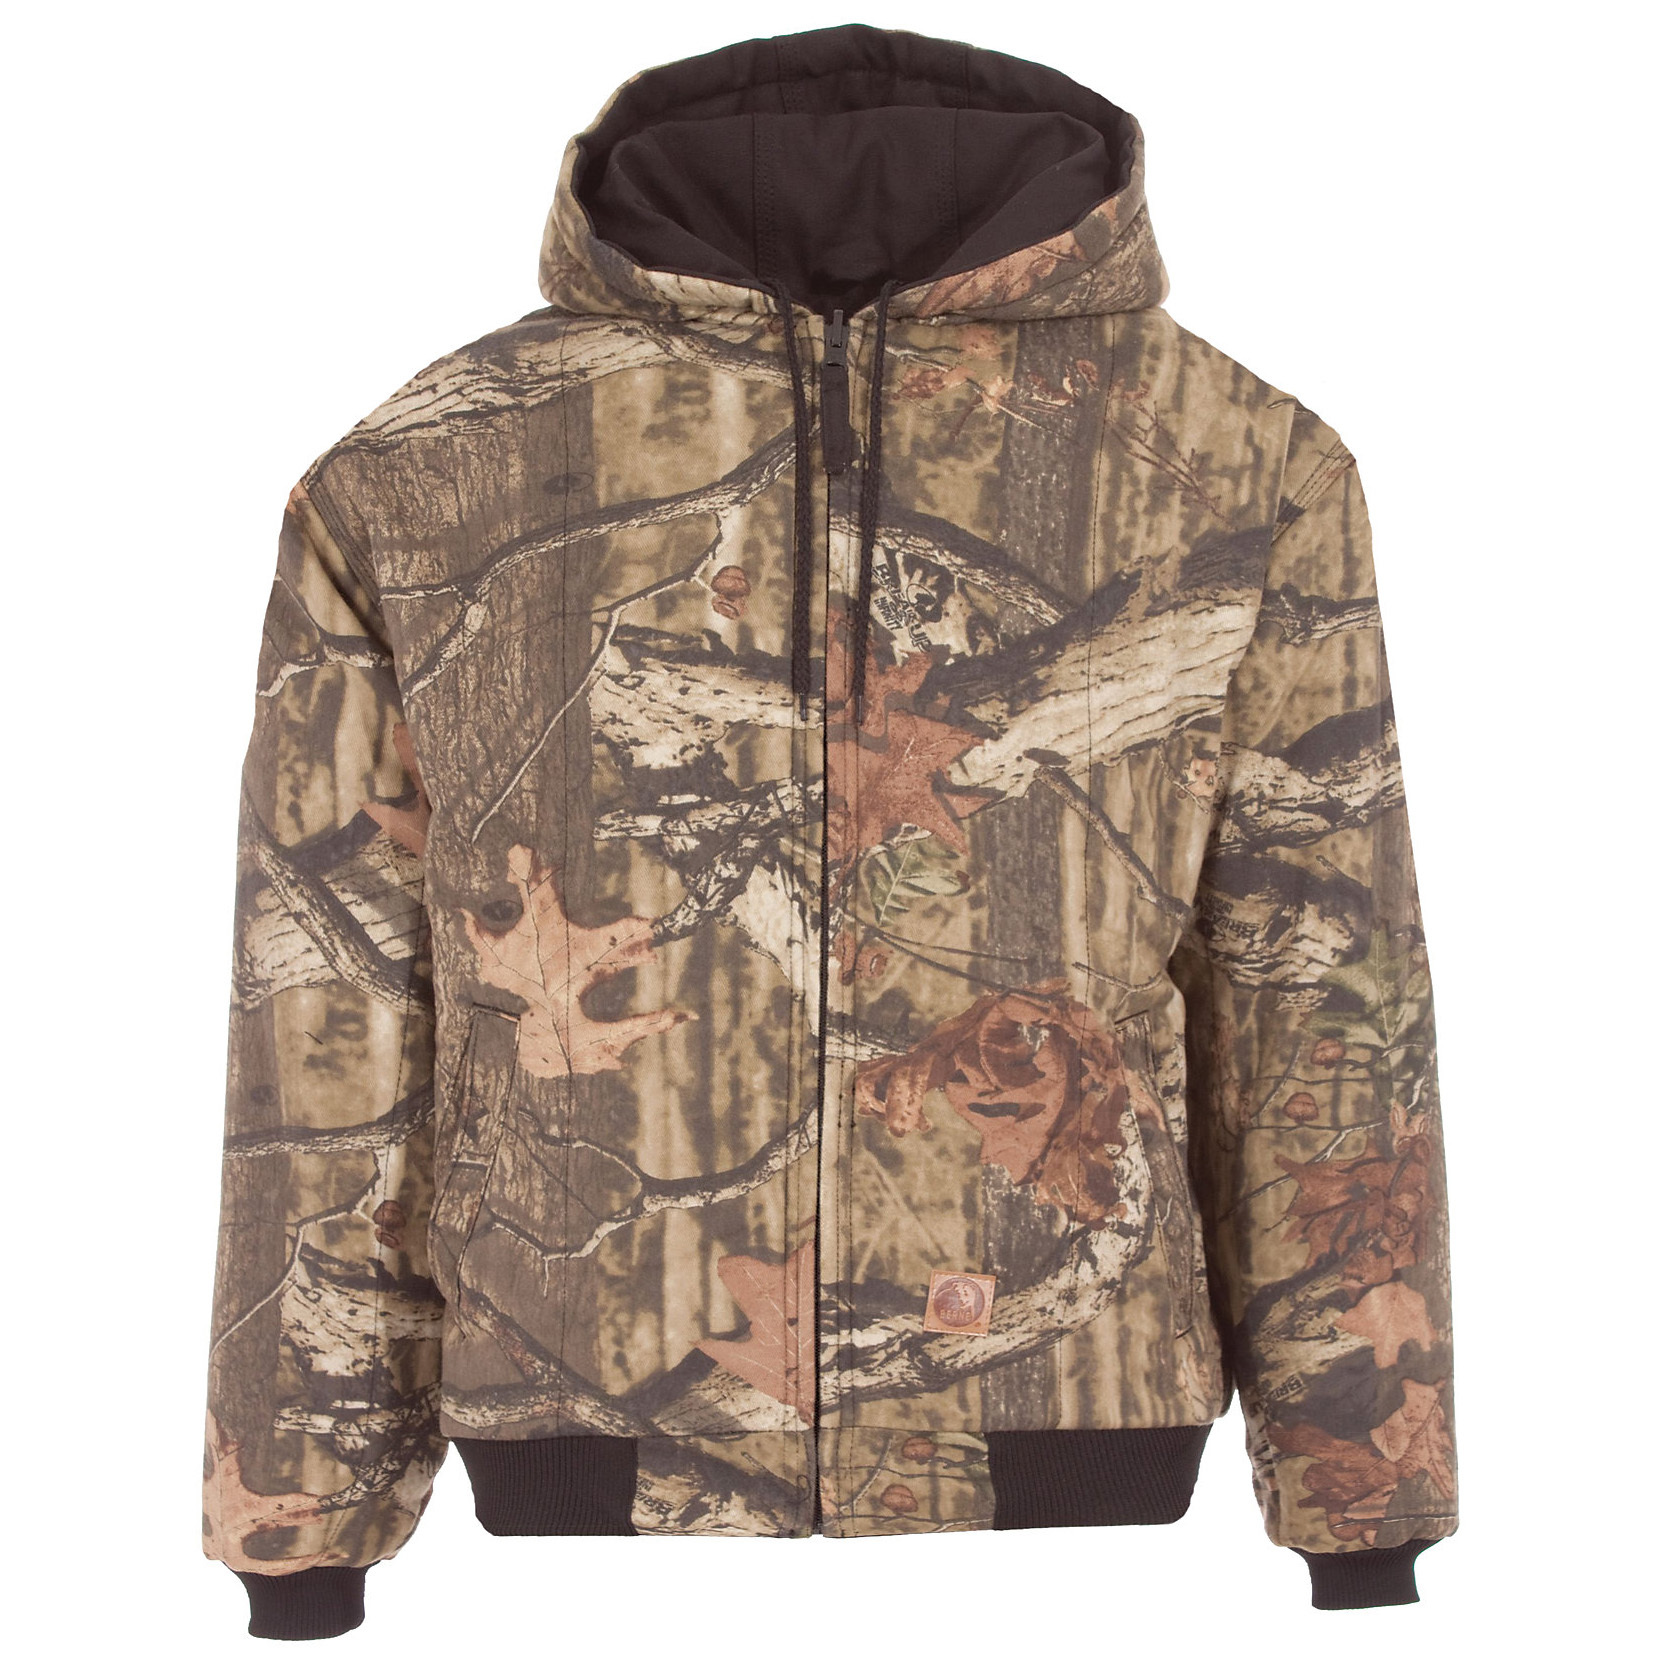 Berne Deerslayer Quilt-lined Camo Hunting Jacket. Into the woods with the best in warm, quiet comfort! Effective camo, triple needle stitching, and heavyweight insulation come together with Berne know-how and value! The 100% heavyweight cotton shell stays super-quiet and stands up to hard use like a champ.Same Berne excellence, same Berne low price:Outer shell: 100% heavyweight cotton with water-repellent finish Body insulation: Heavyweight insulation quilted to 100% polyester Sleeve insulation: Midweight insulation quilted to smooth 100% polyester taffeta Triple needle-stitched main seams for added toughness Knit cuffs and waistband Pleated elbows and pleated bi-swing back for easy movement Oversized pockets. Imported. State Color and Size, as available in the Shopping Cart. - $64.99